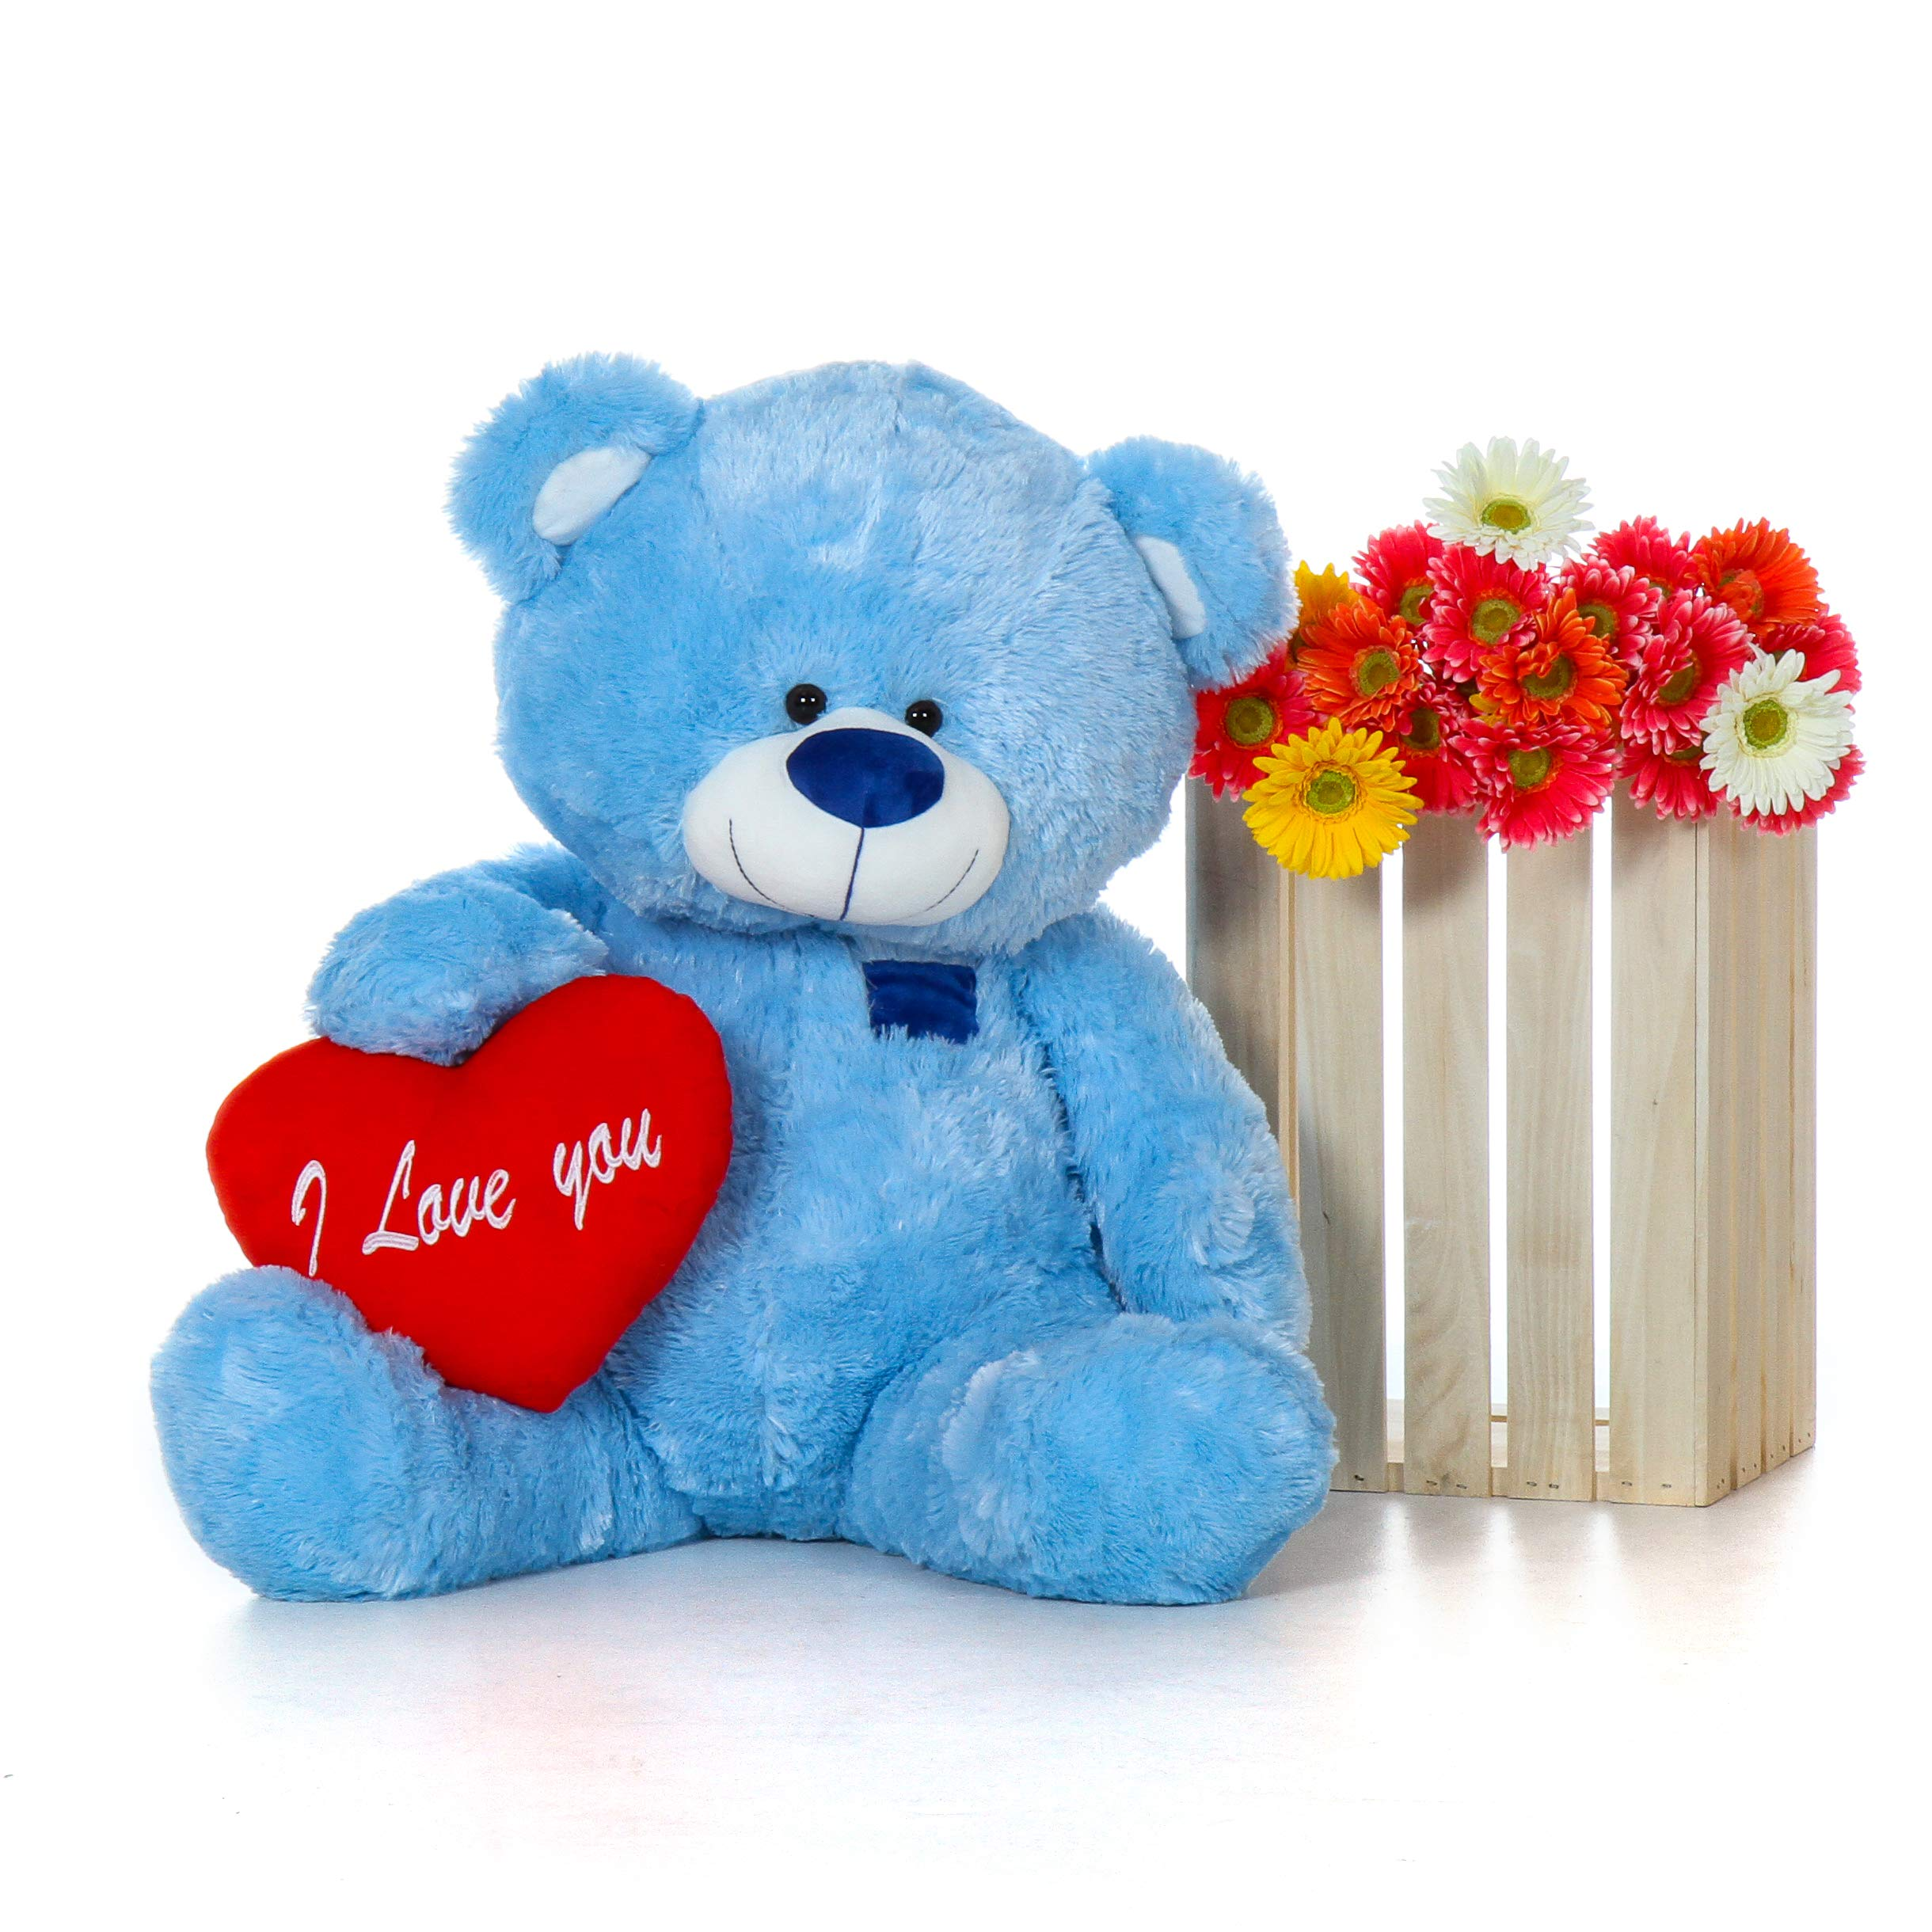 Giant Teddy Original Brand - Biggest Collection of Super Soft Stuffed Teddy Bears (Pillow Heart Included) (Sky Blue, Huge)